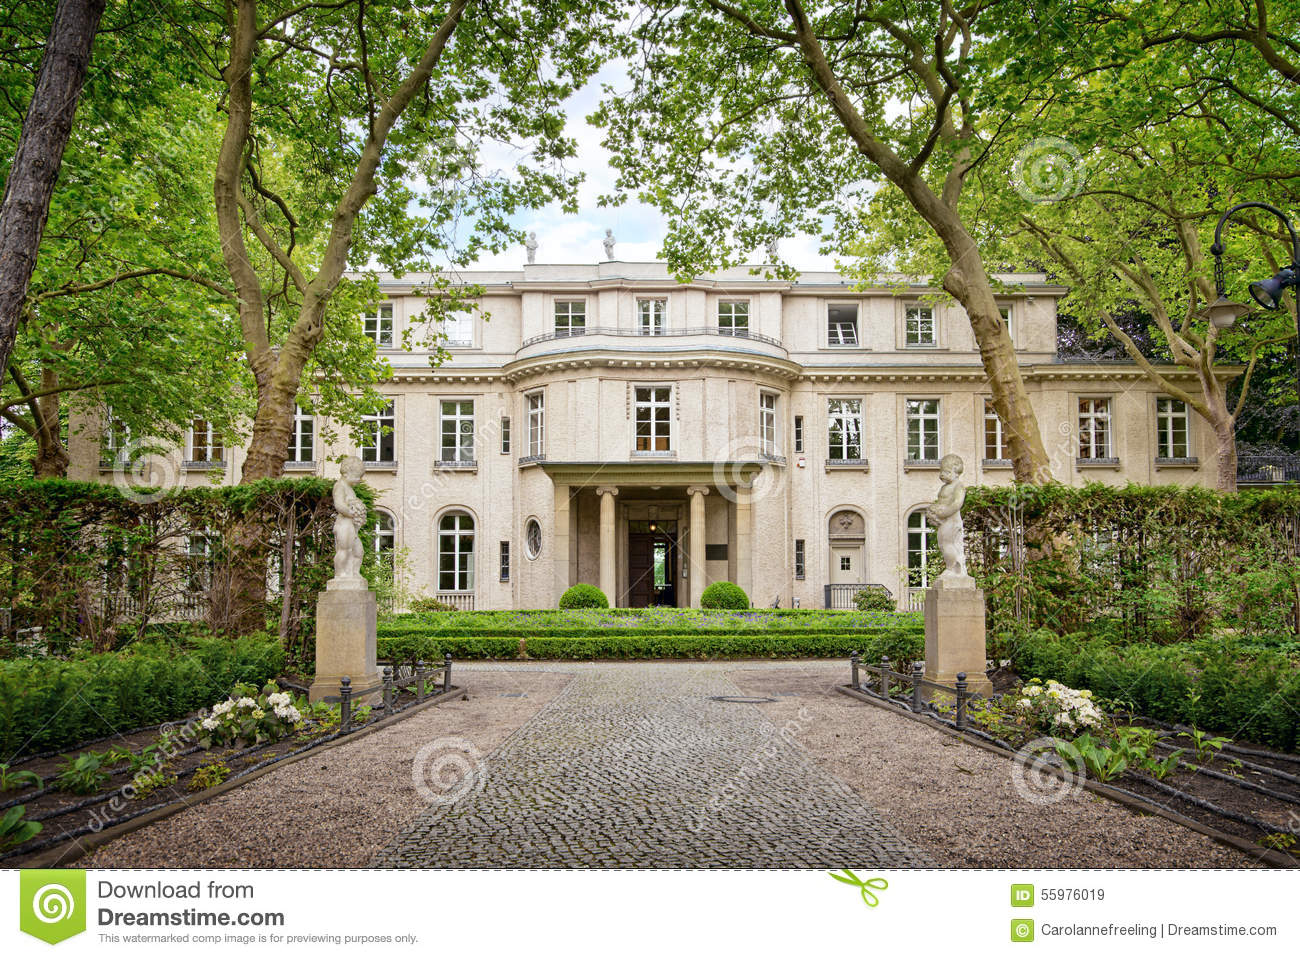 House of the Wannsee conference in Berlin, Germany